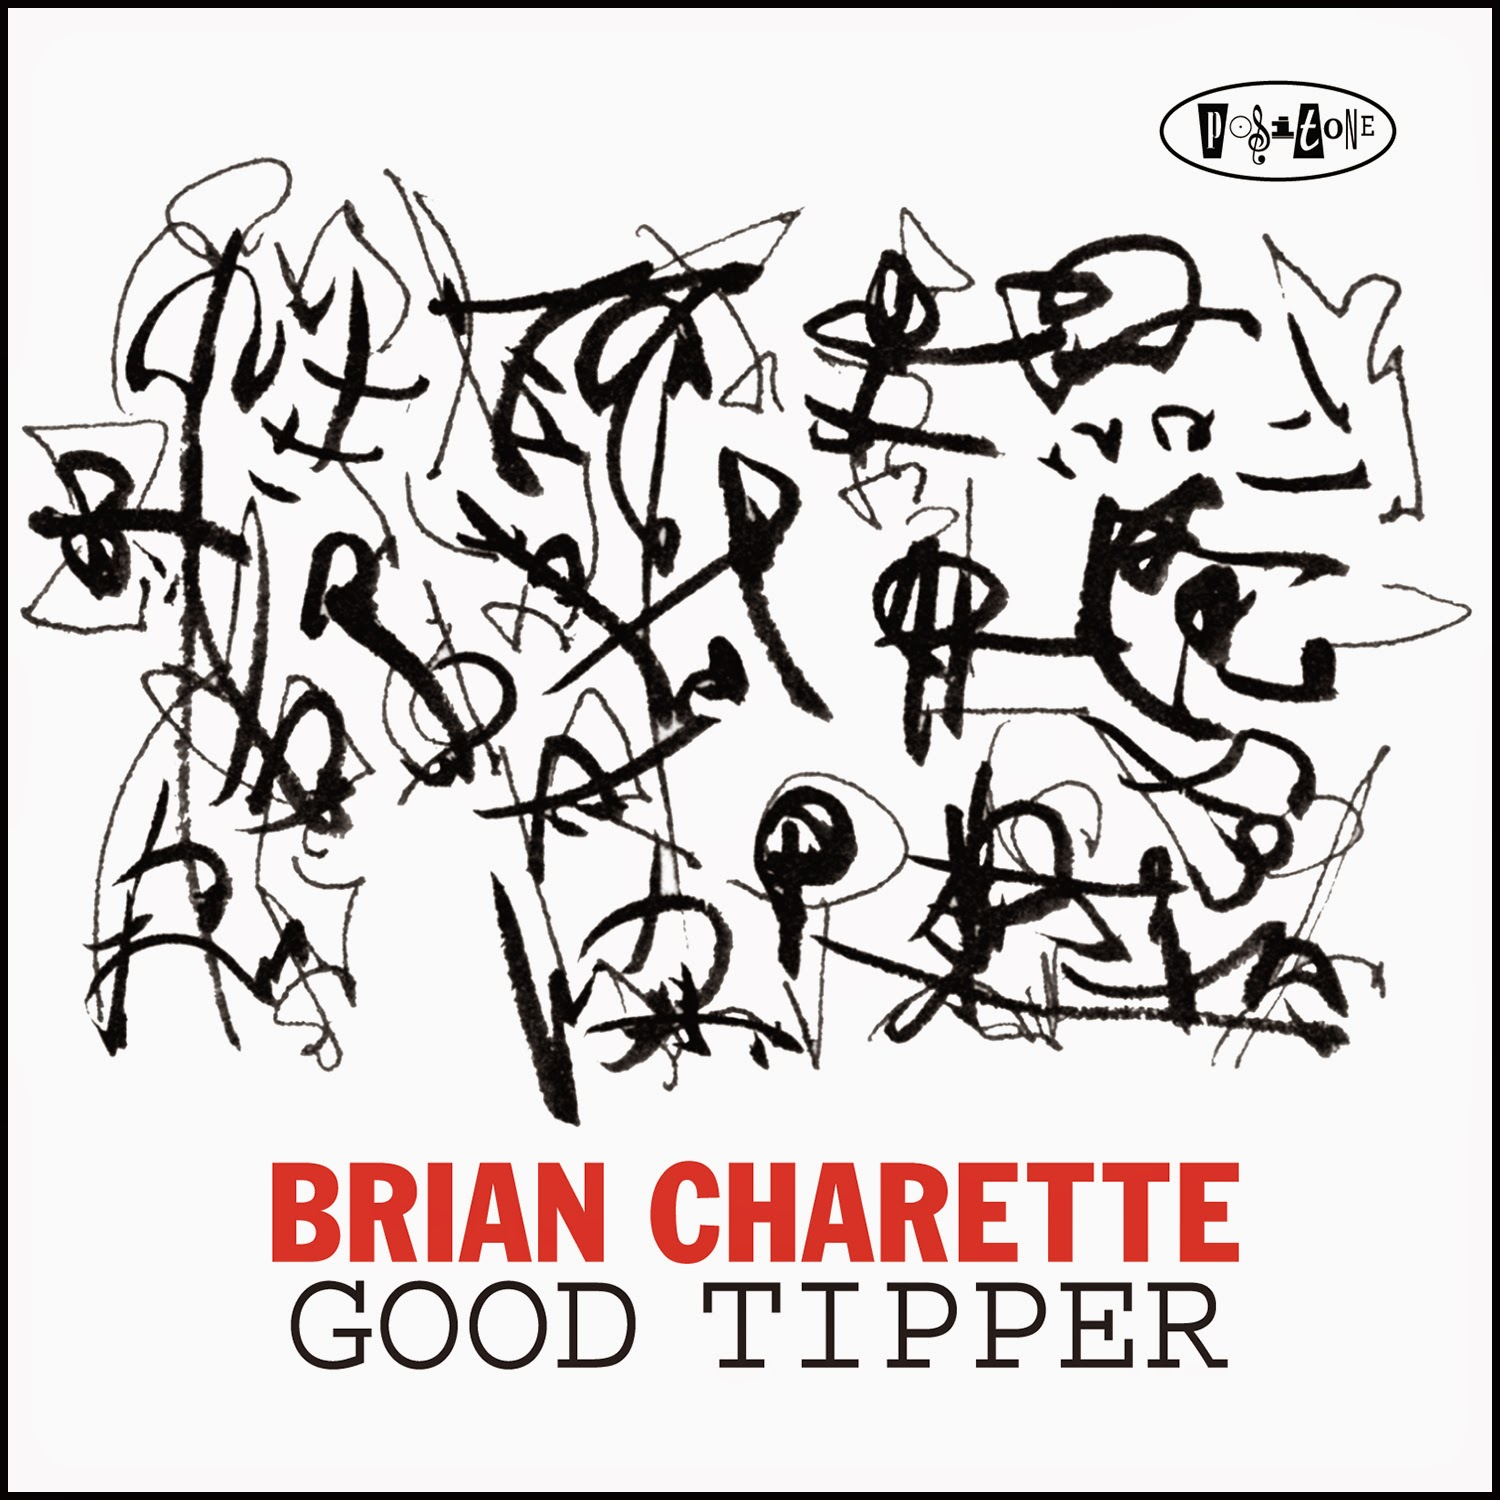 http://www.d4am.net/2014/12/brian-charette-good-tipper.html